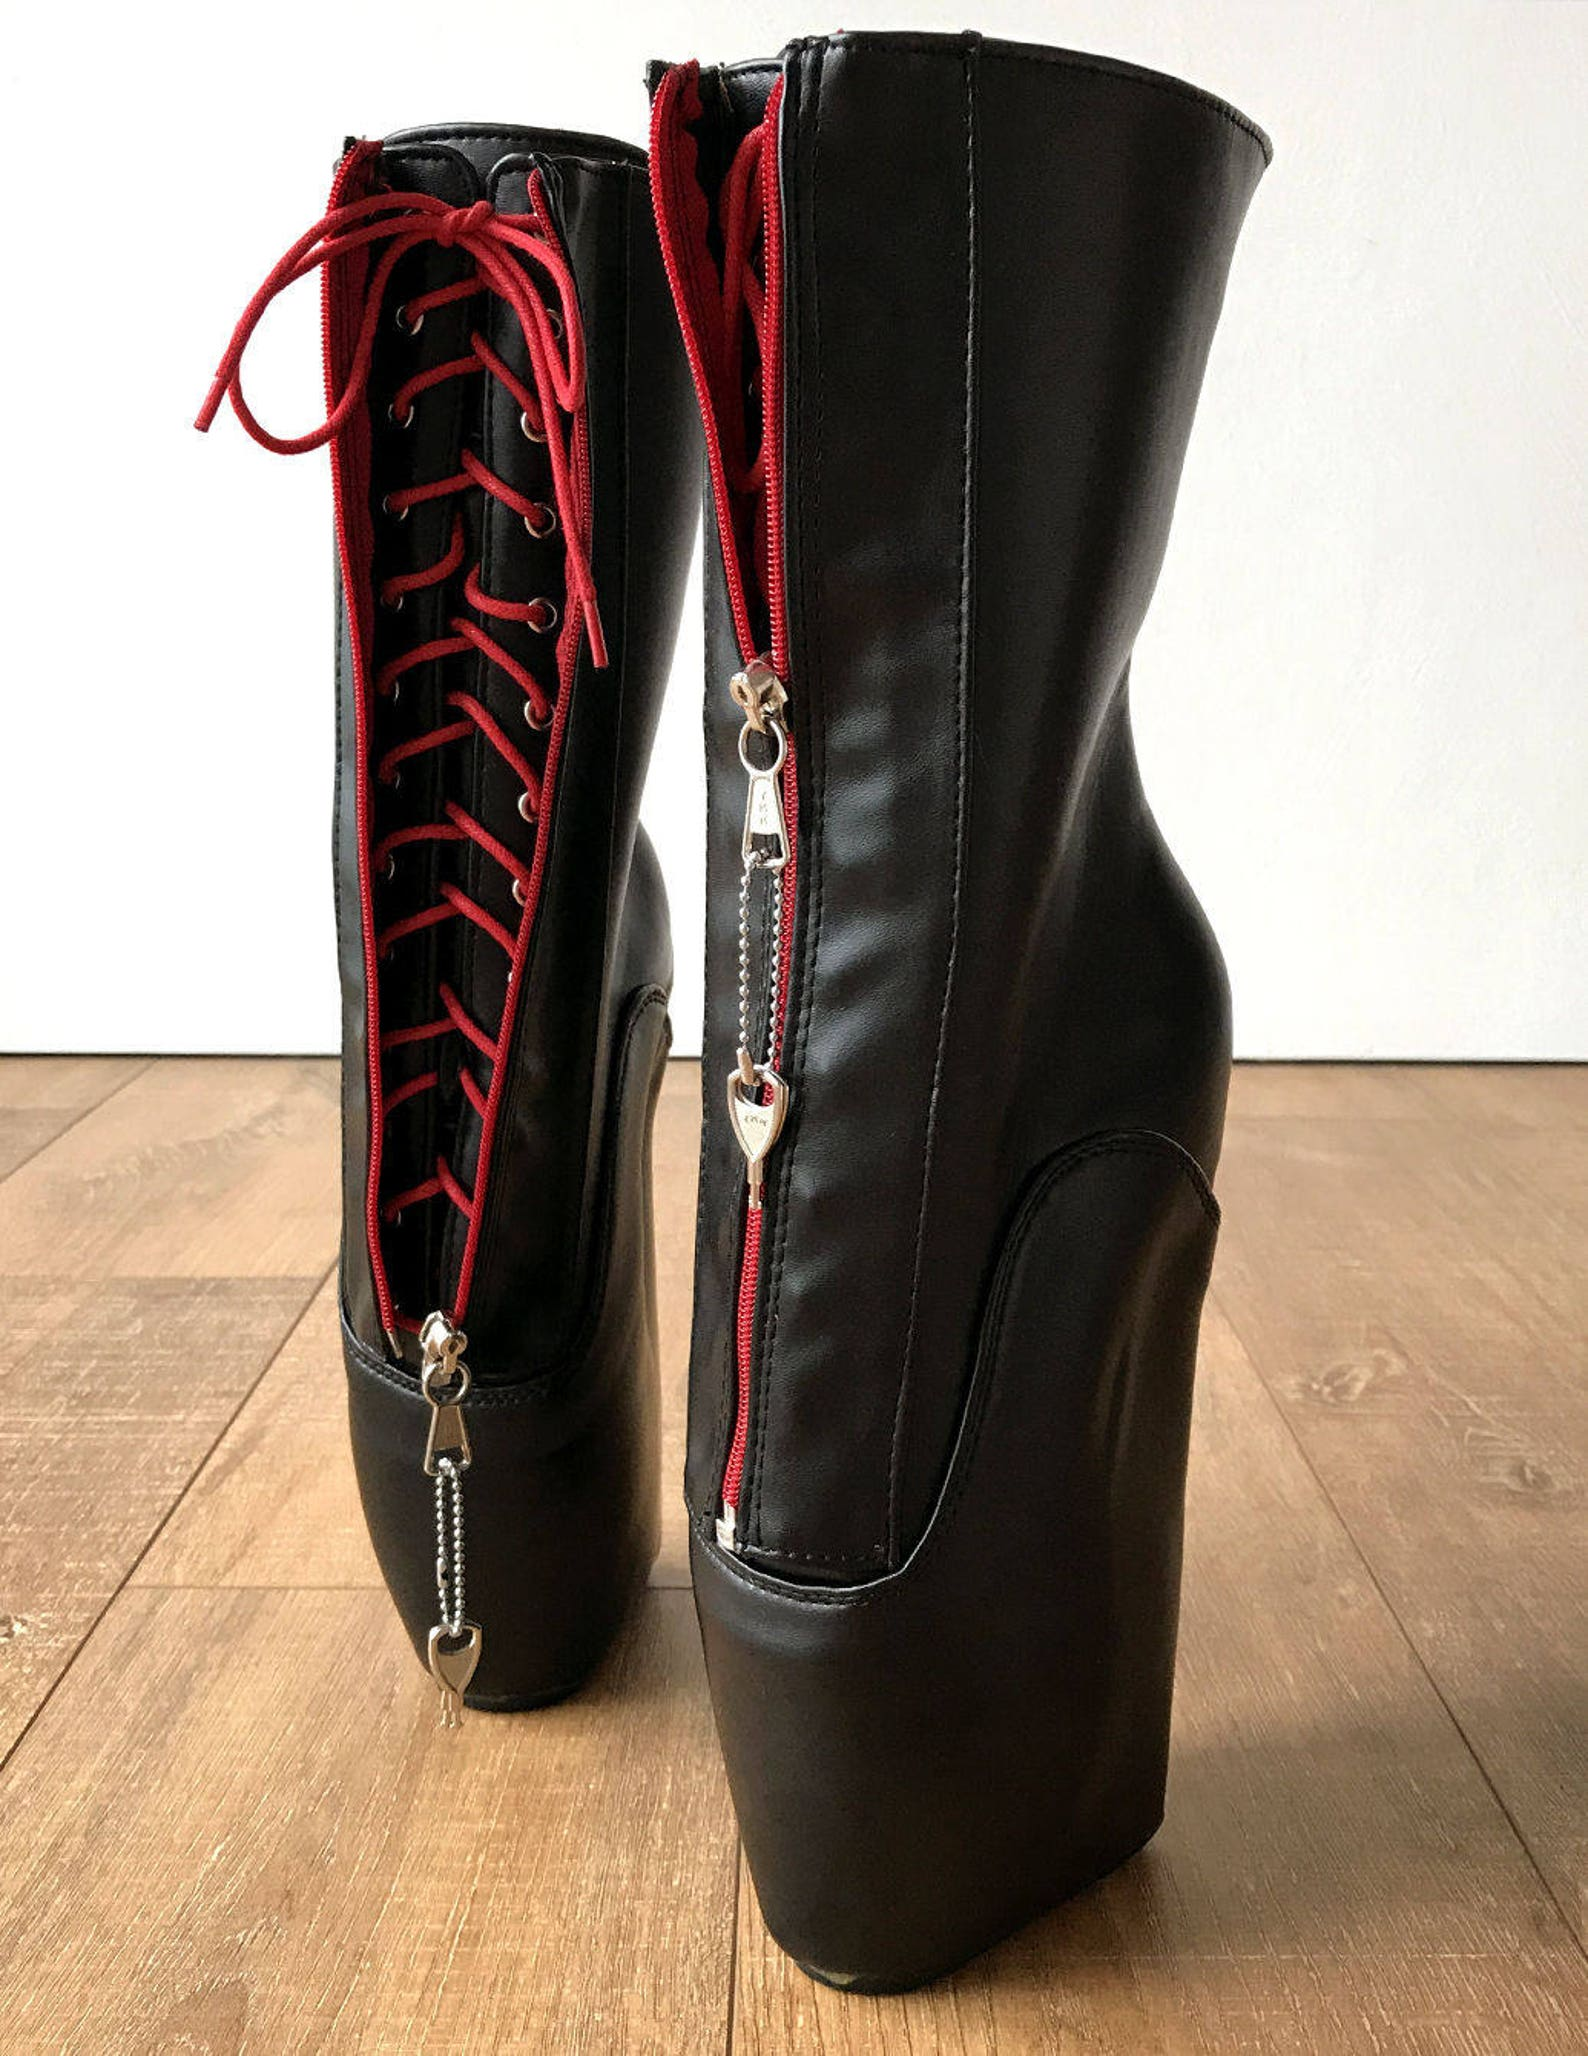 rtbu taboo red lockable zip ballet hidden red lace wedge fetish submissive boot